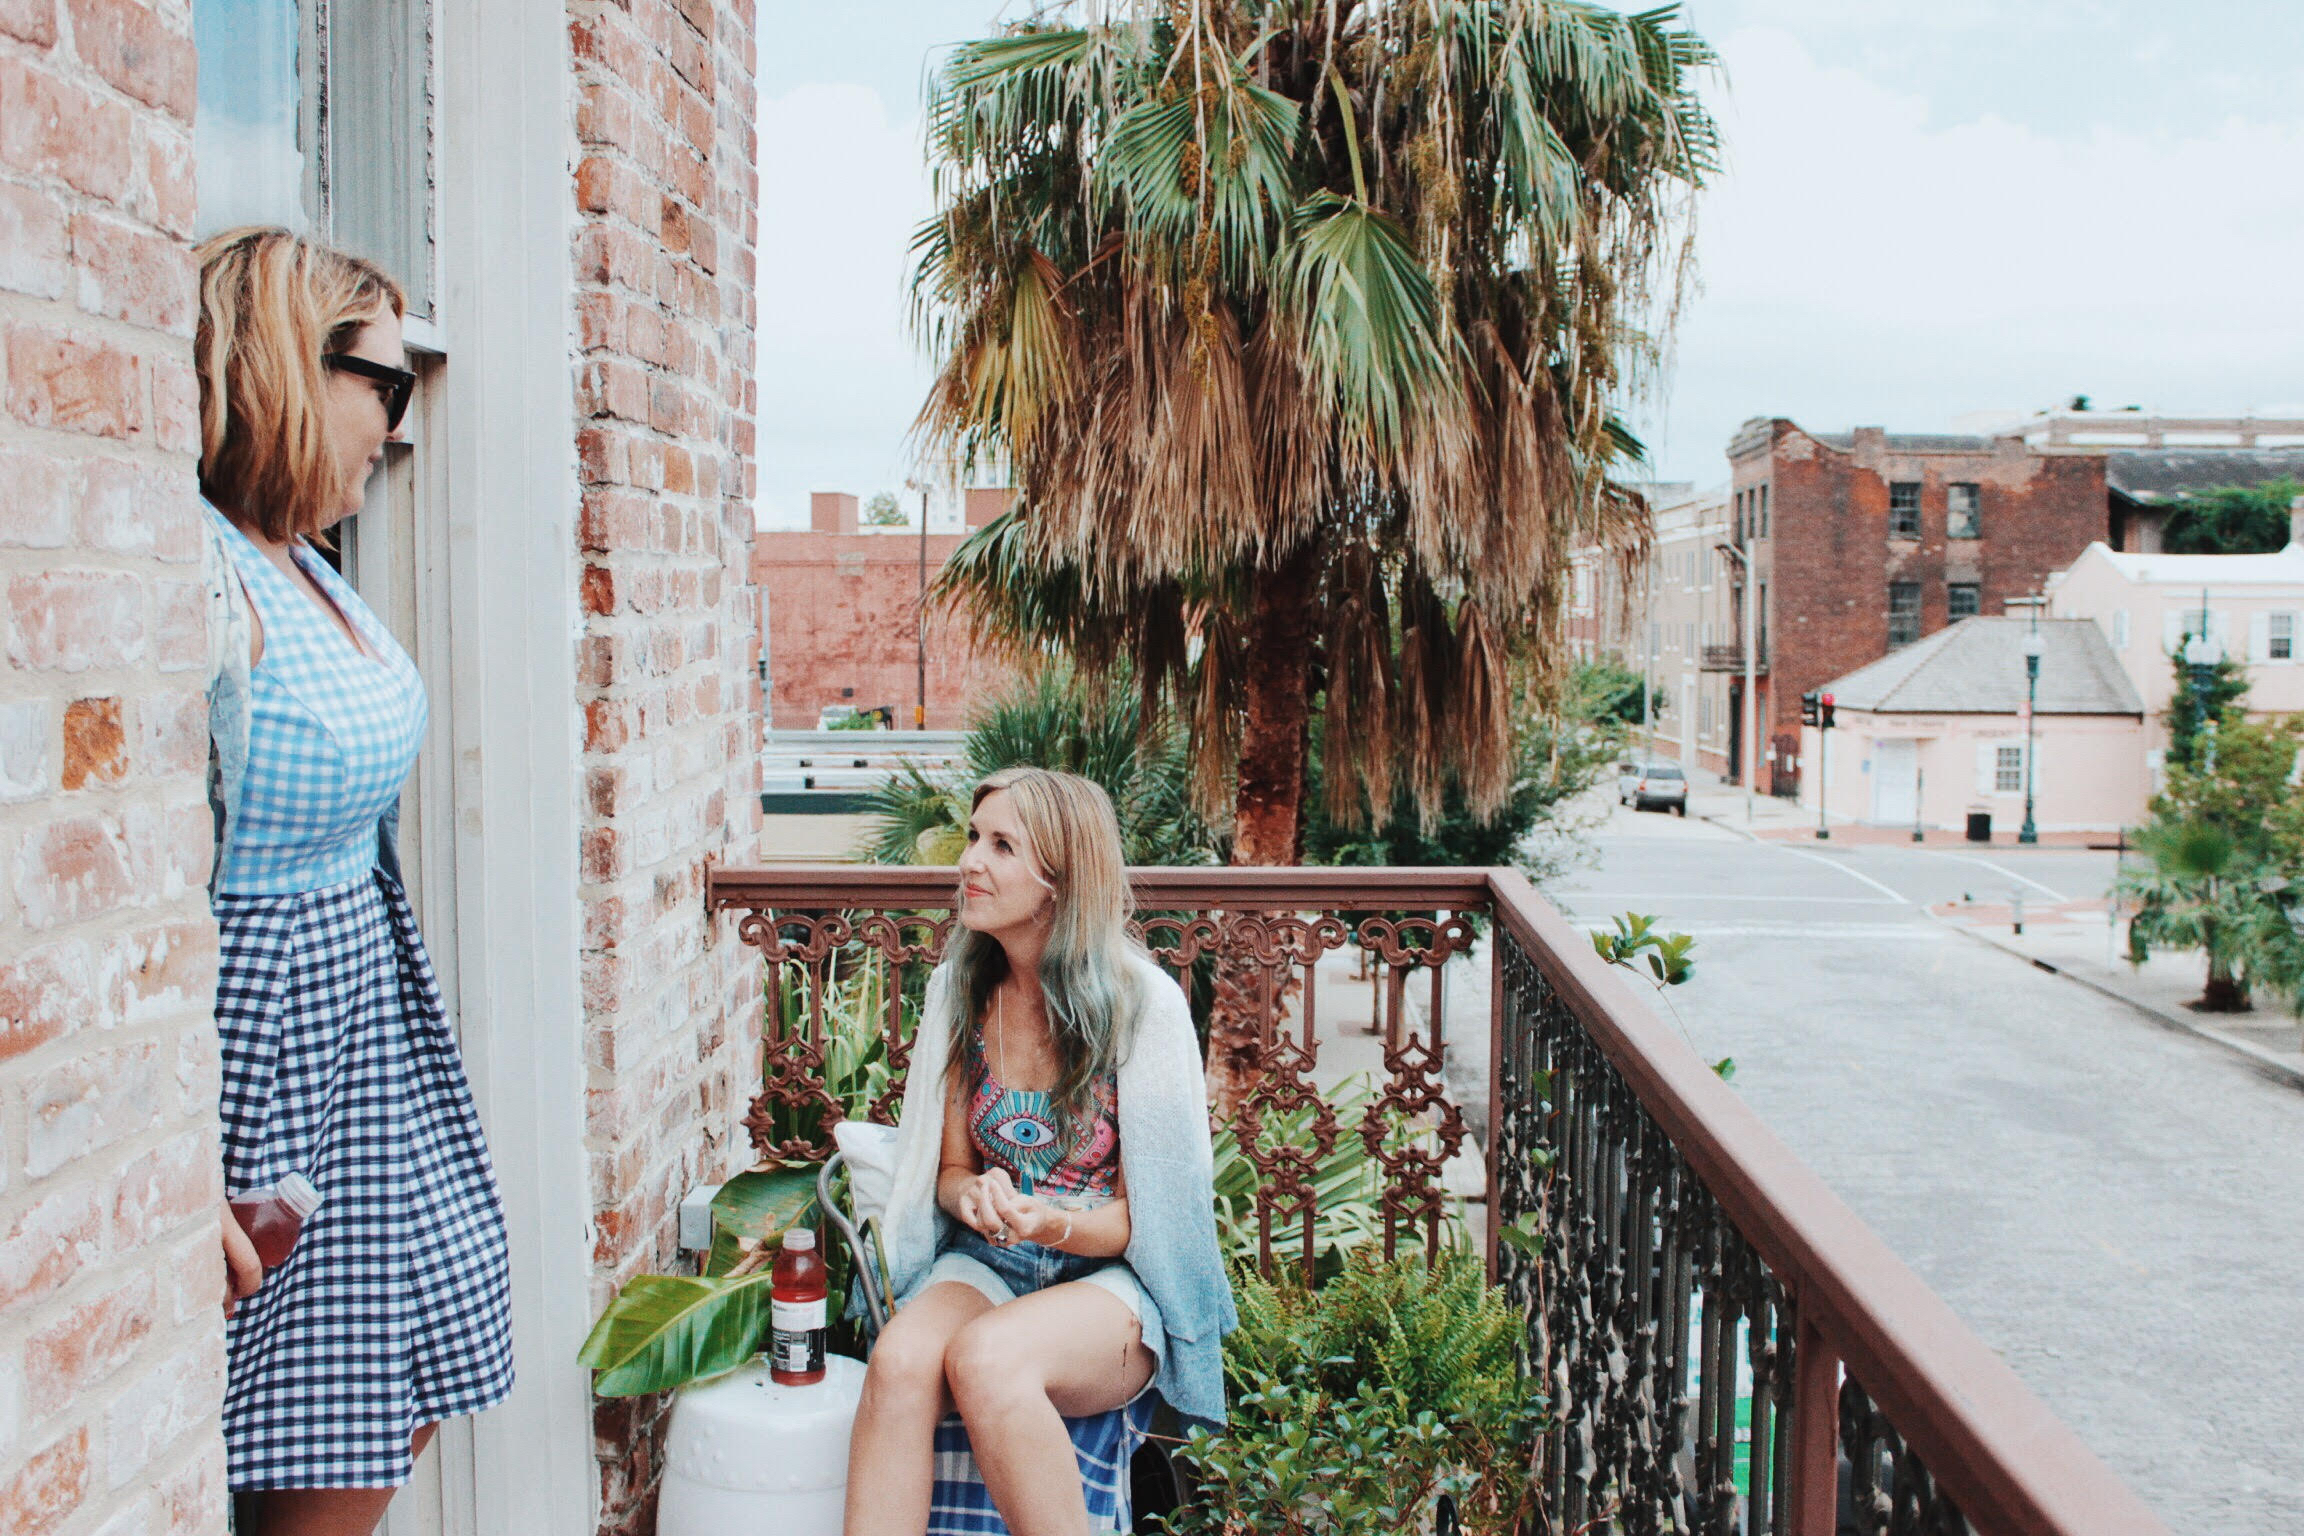 Girls on a New Orleans balcony